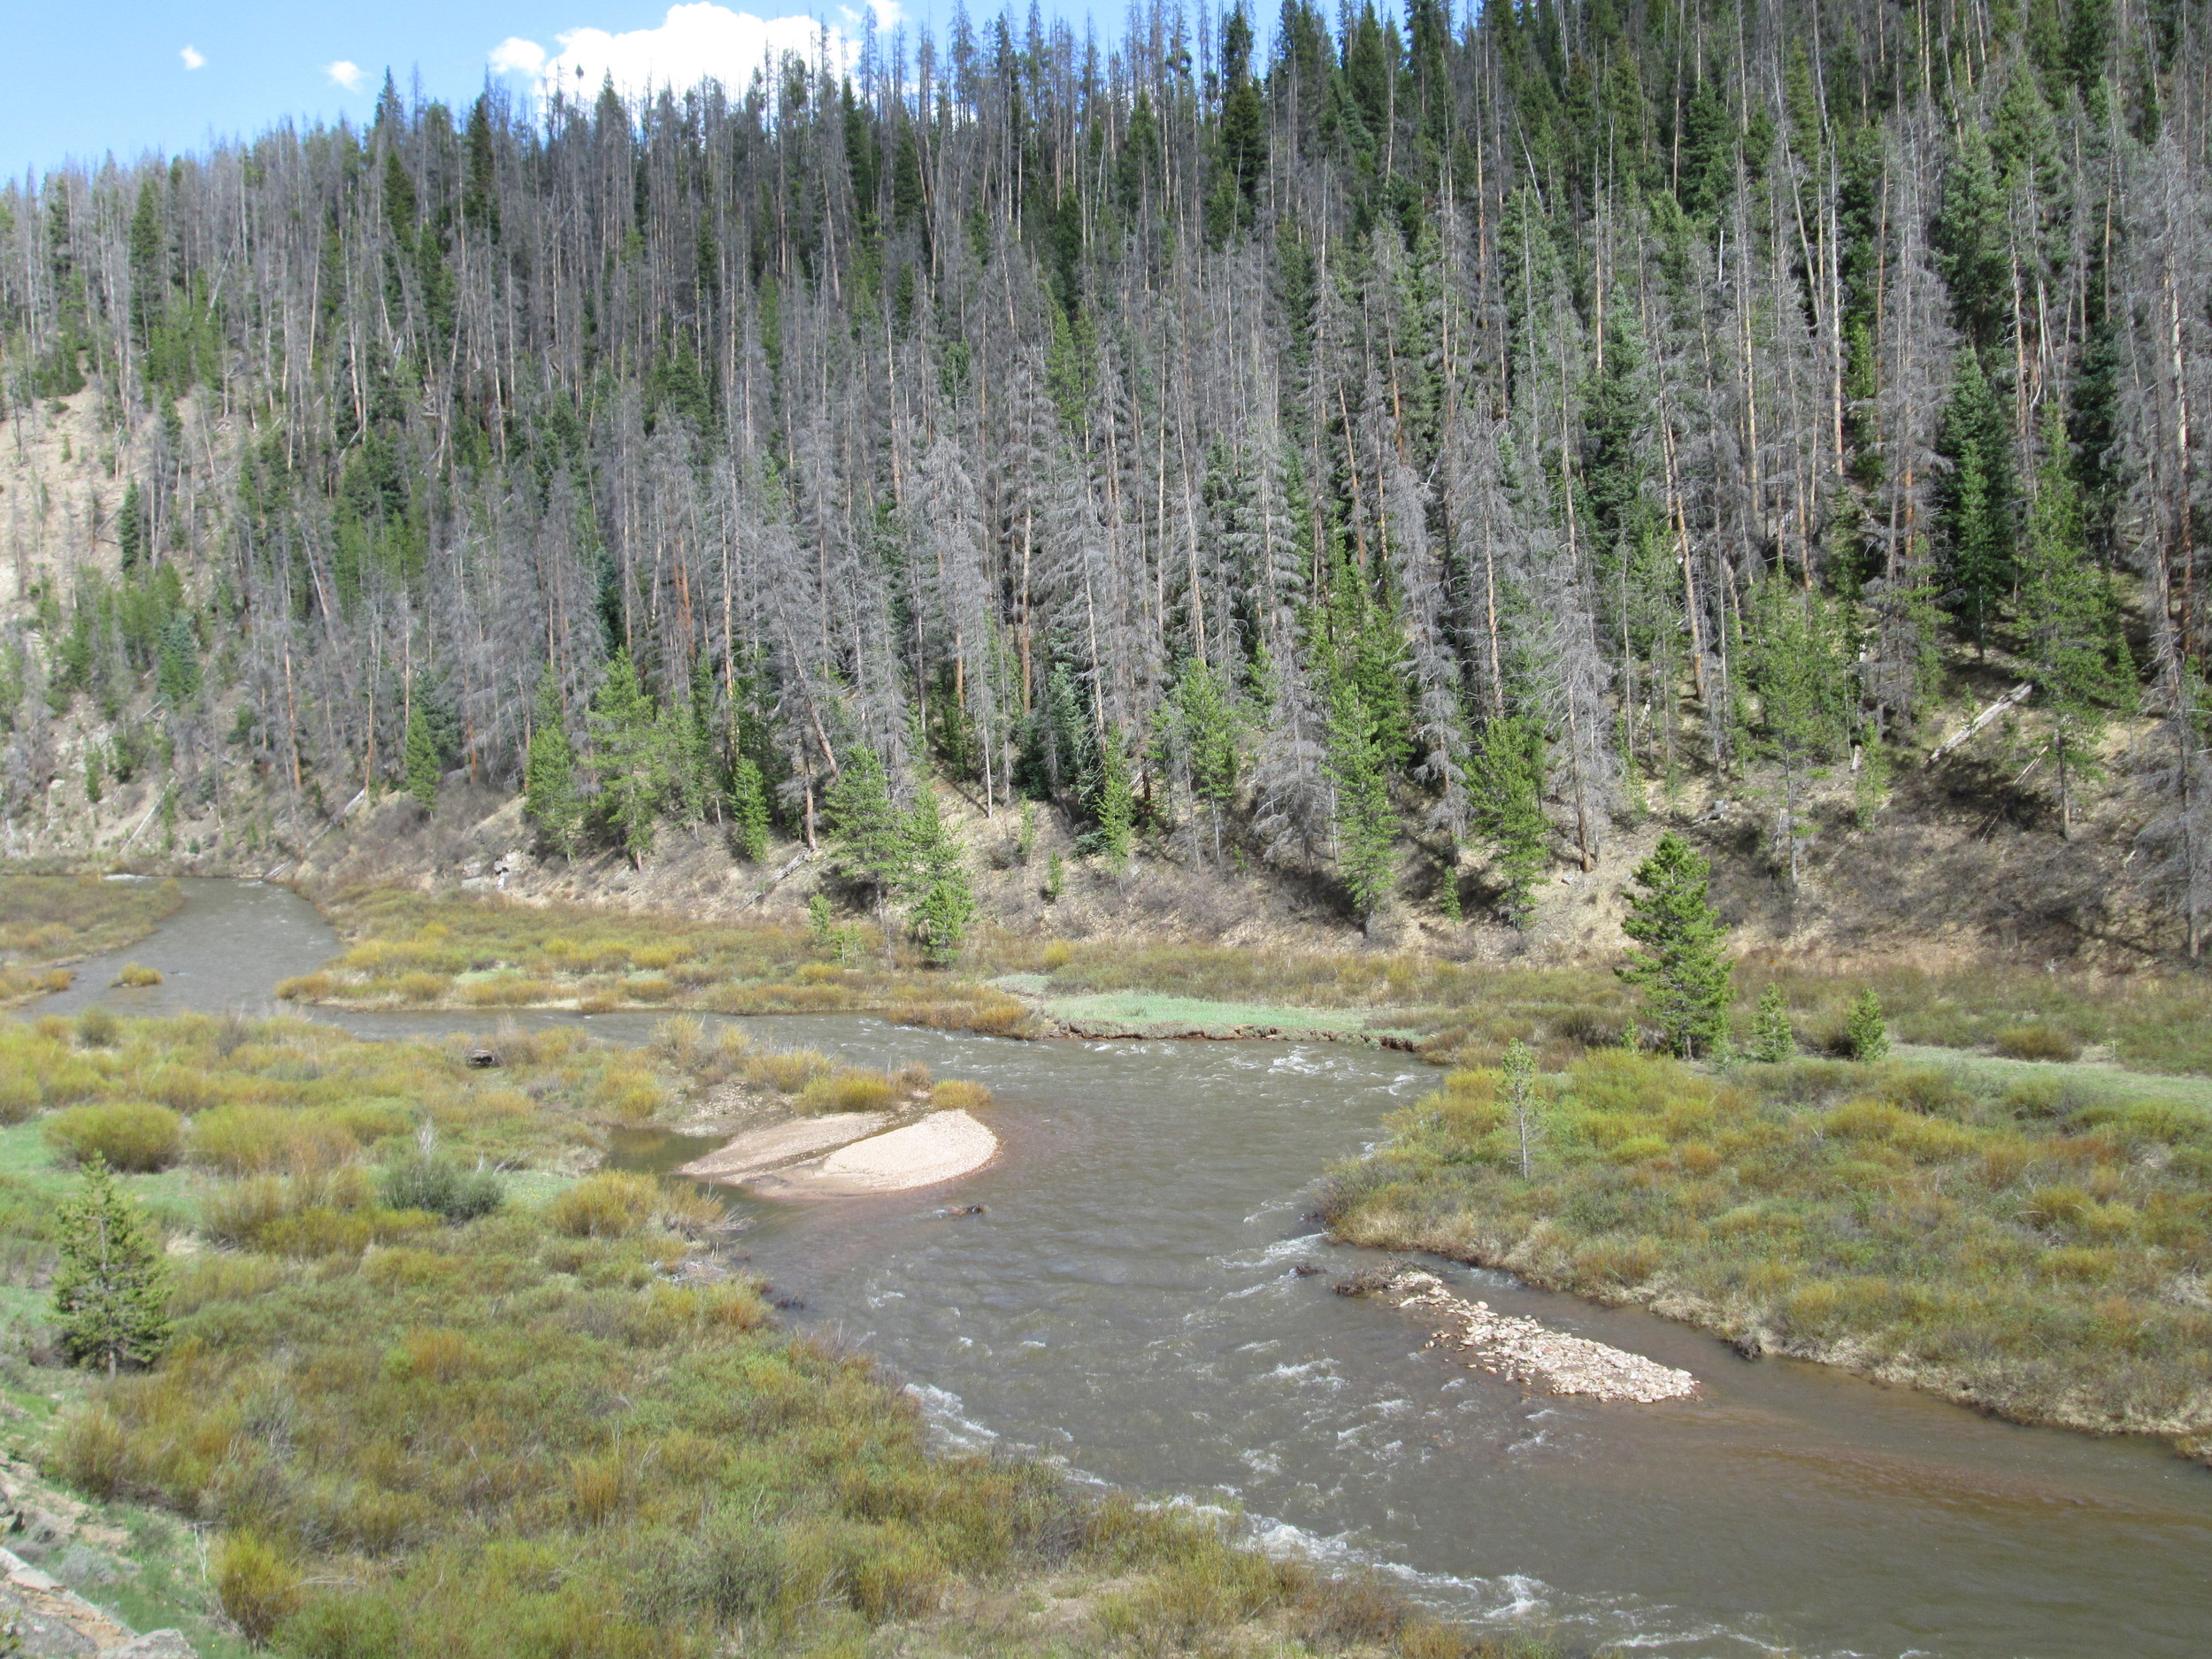 Willow Creek just a few miles south of Willow Creek Pass.